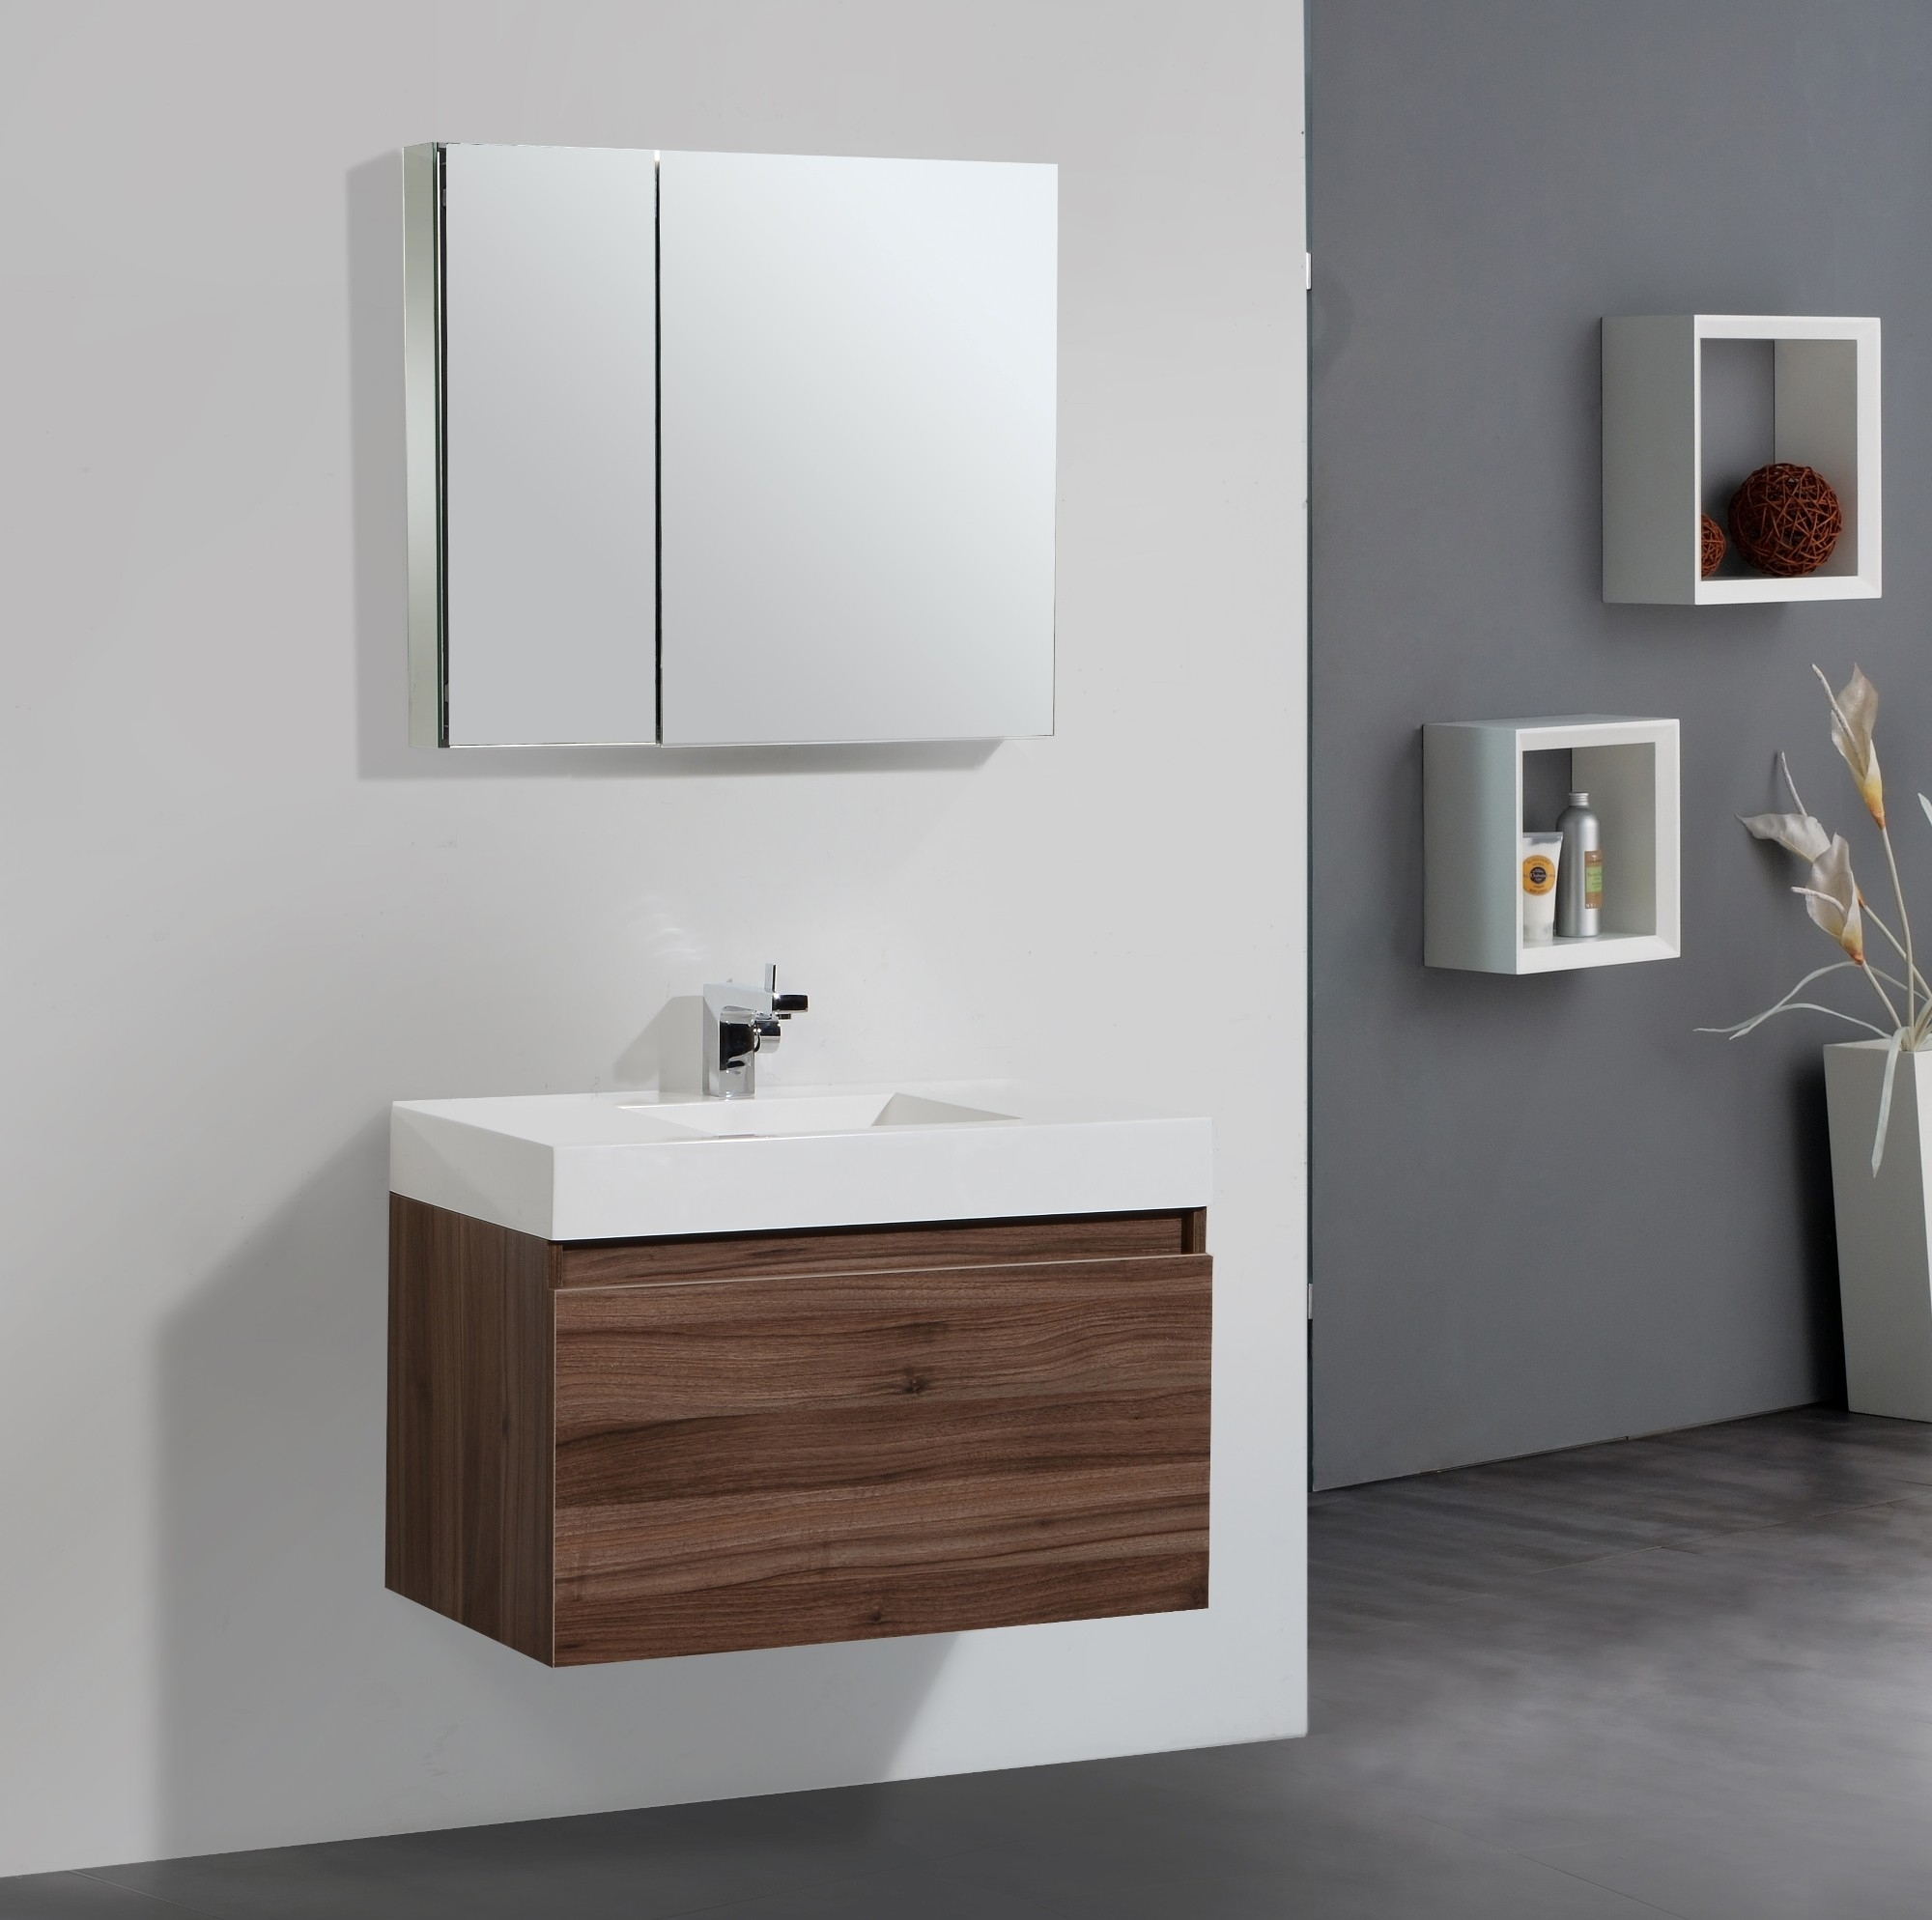 Wall Mounted Bathroom Sink Cabinets